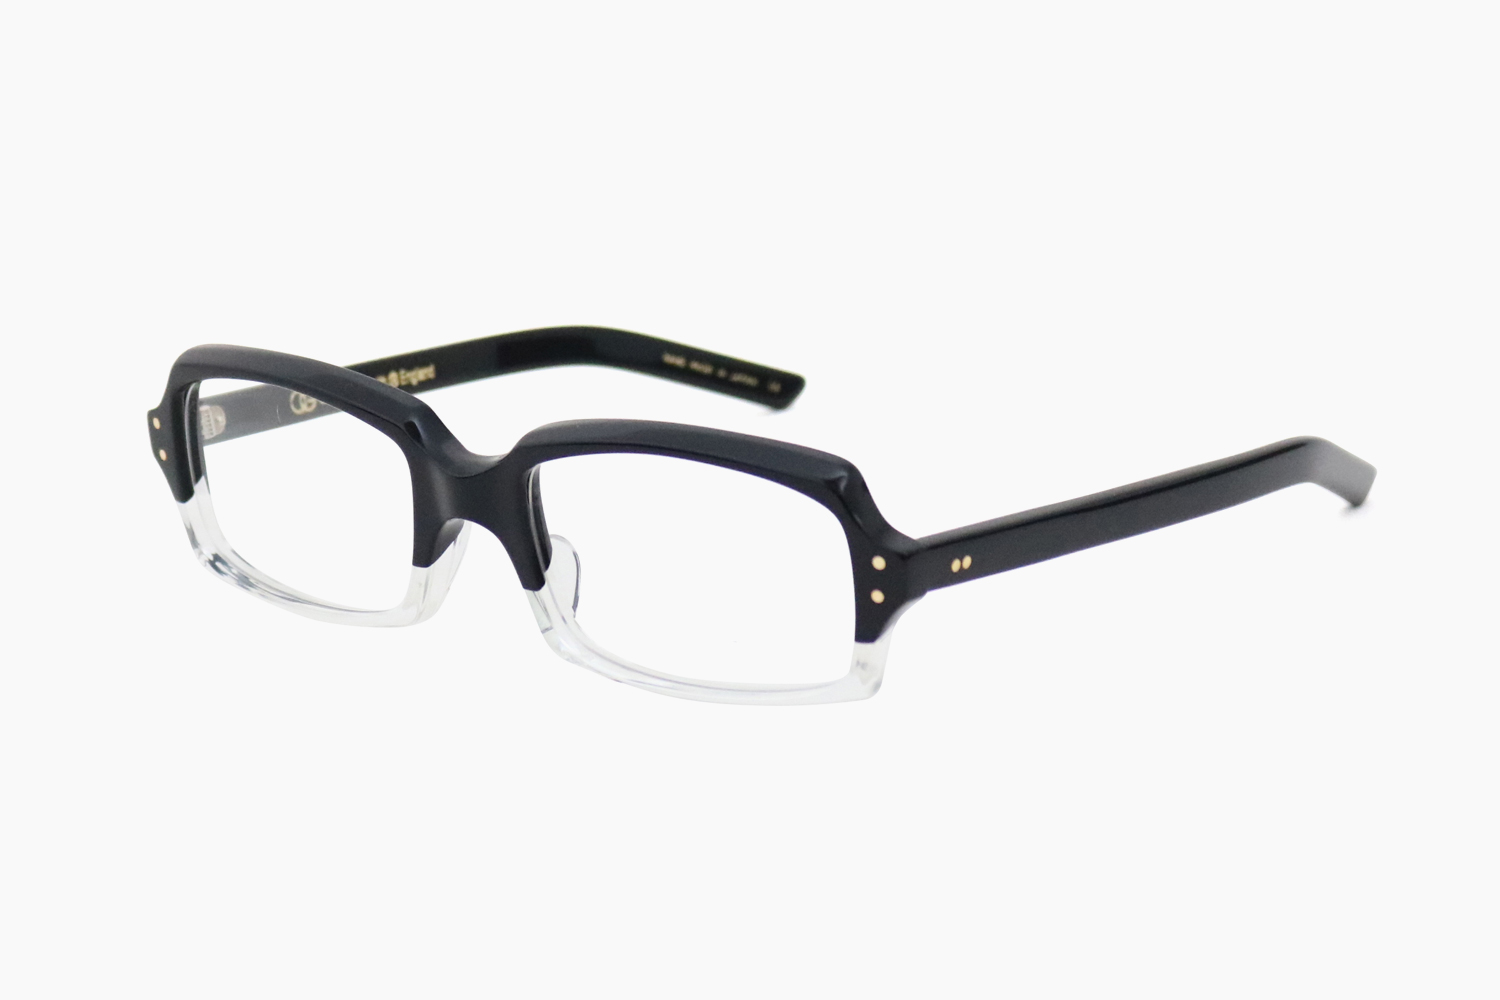 SHAH-g - Black Float|OLIVER GOLDSMITH